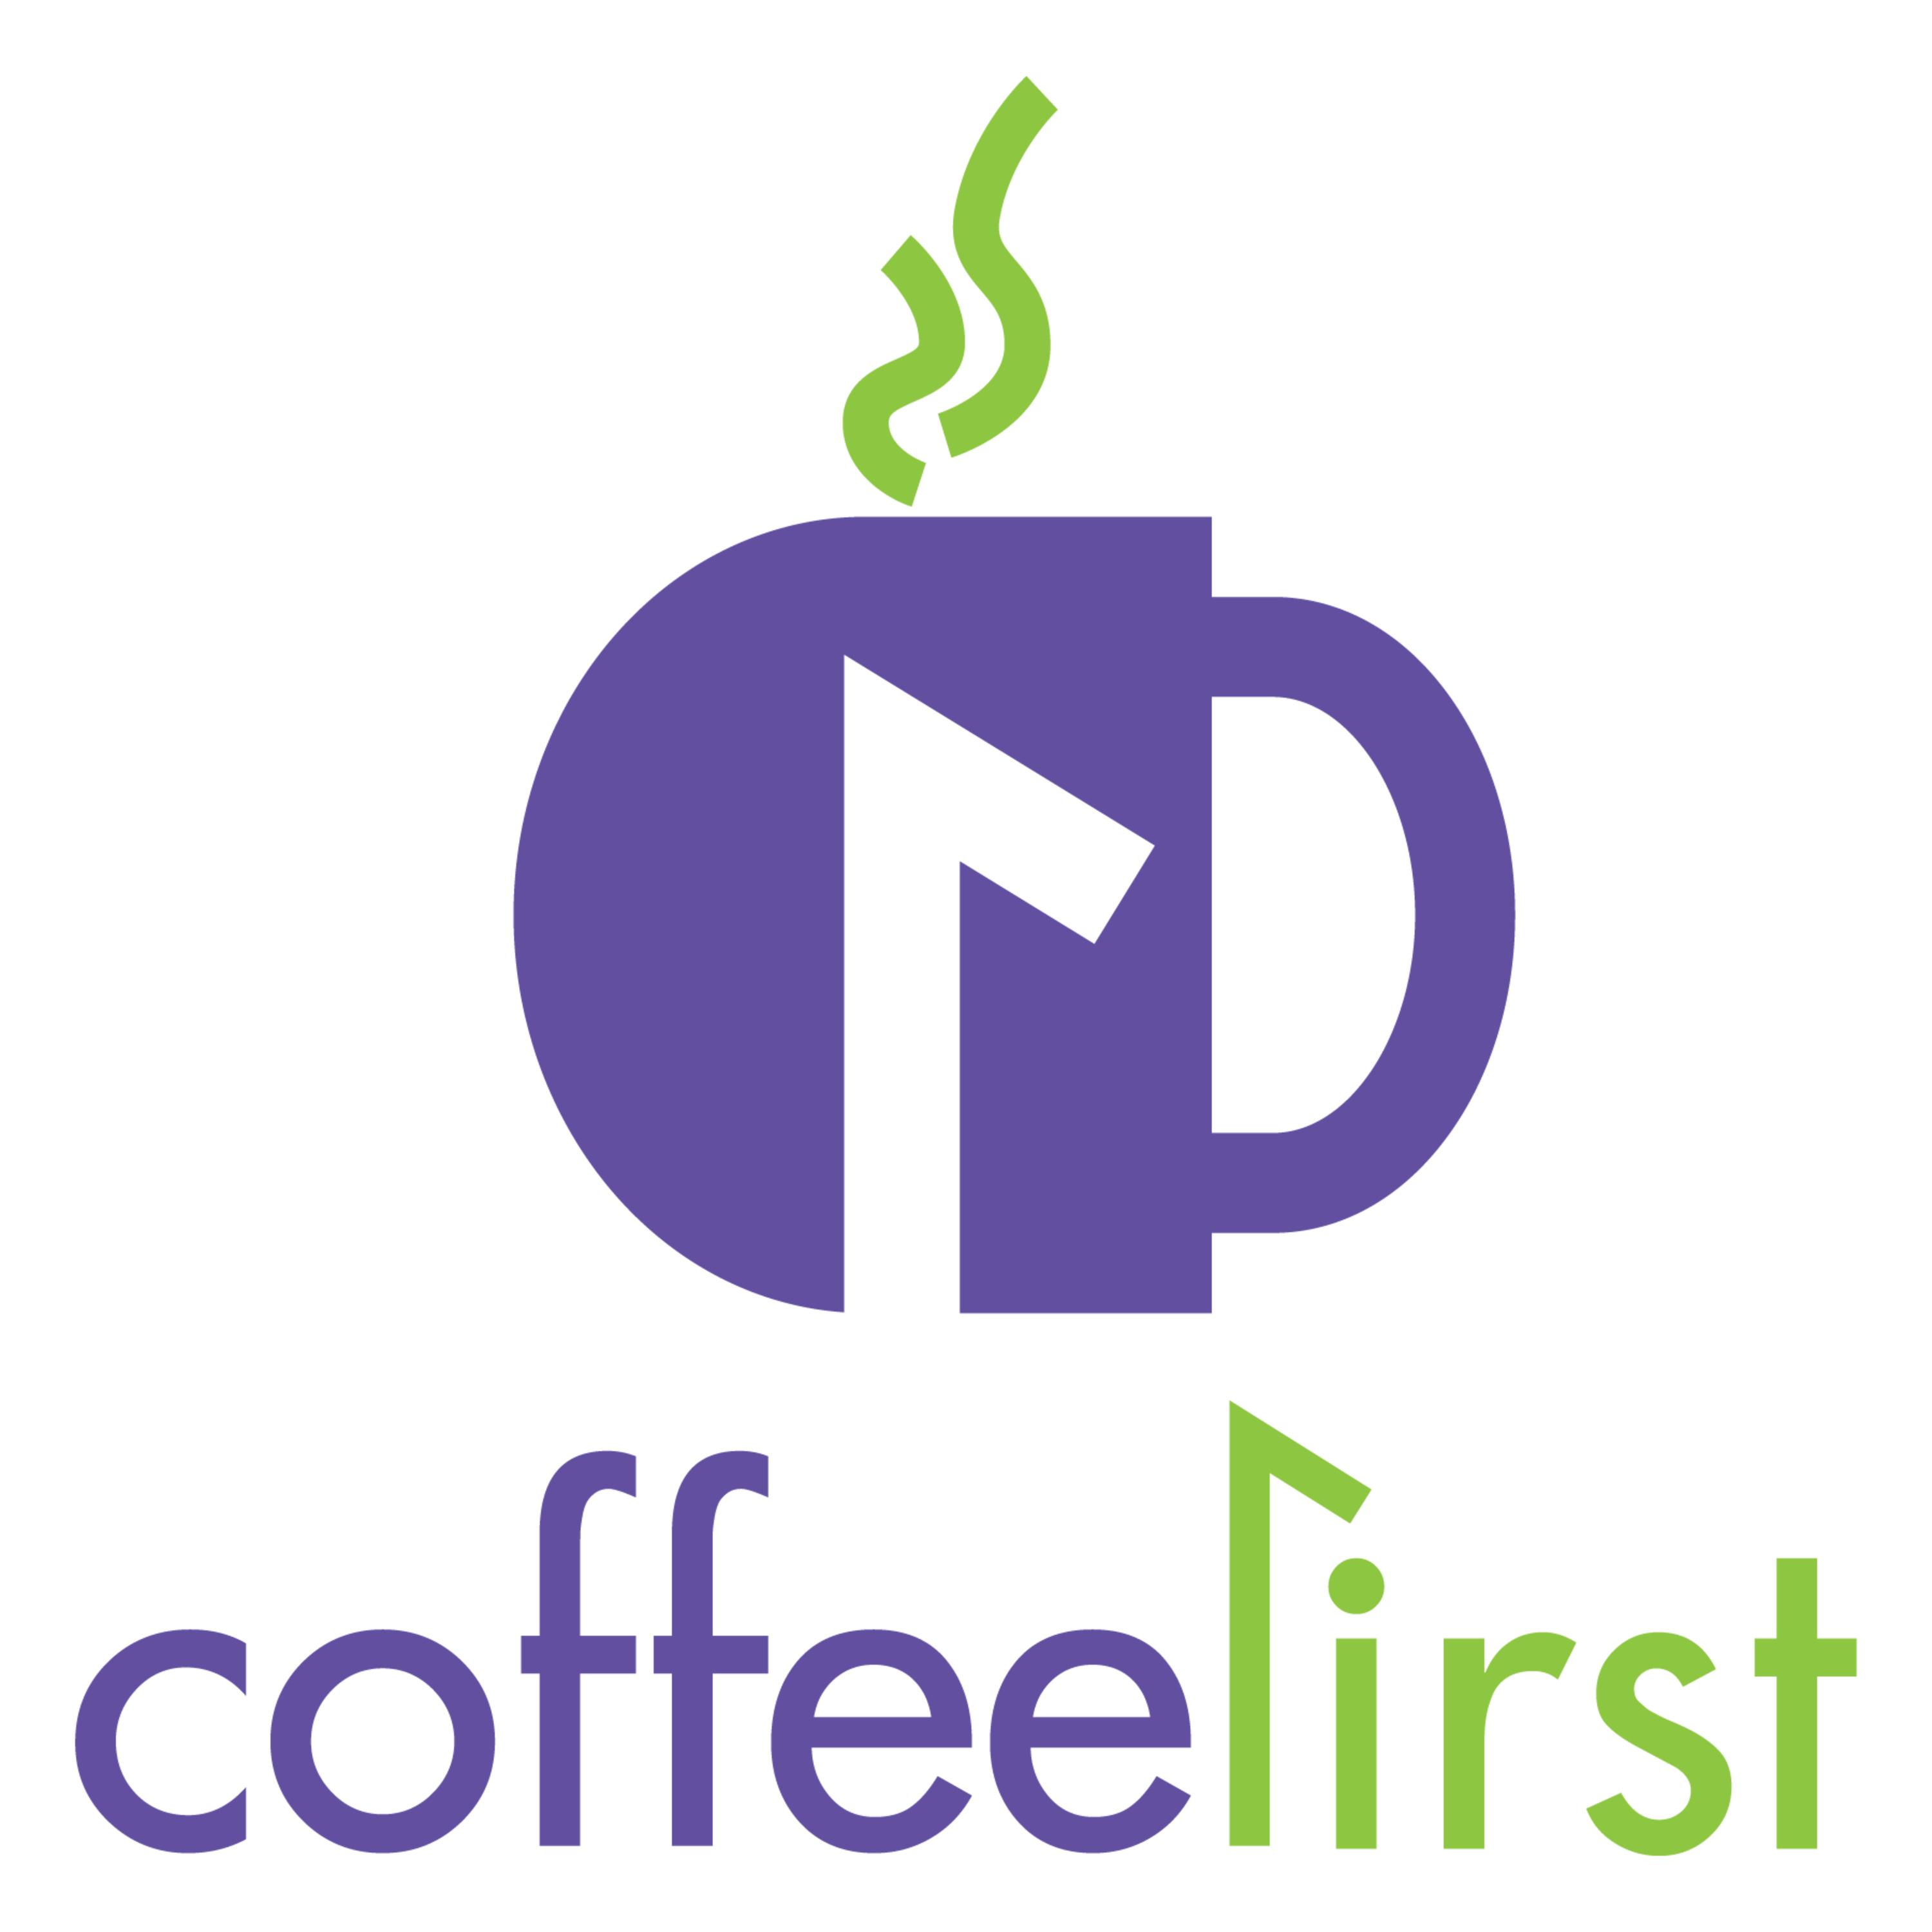 Mental Health Download: Exploring Mental Illness, Suicide, Homelessness and Incarceration - Do Good. Drink CoffeeFirst.